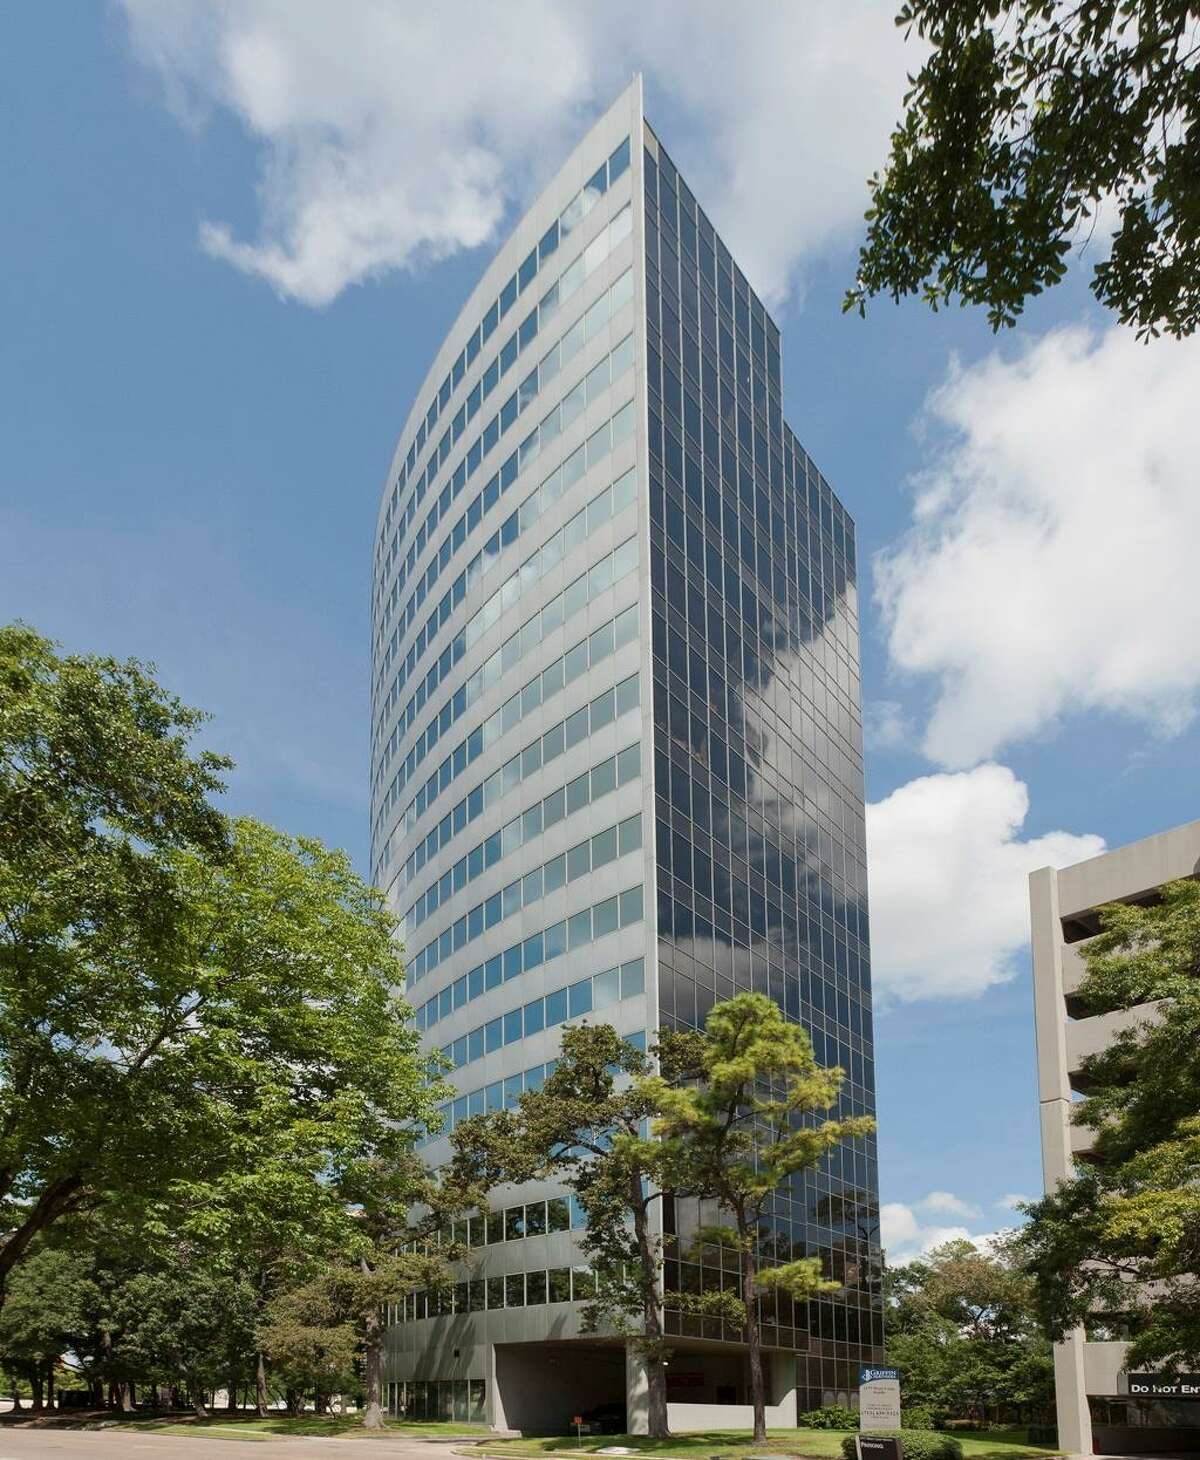 Hicks Ventures and Taconic Capital Advisors plan improvements to 1177 West Loop South. The building was purchased from Dallas-based Spire Realty Group.